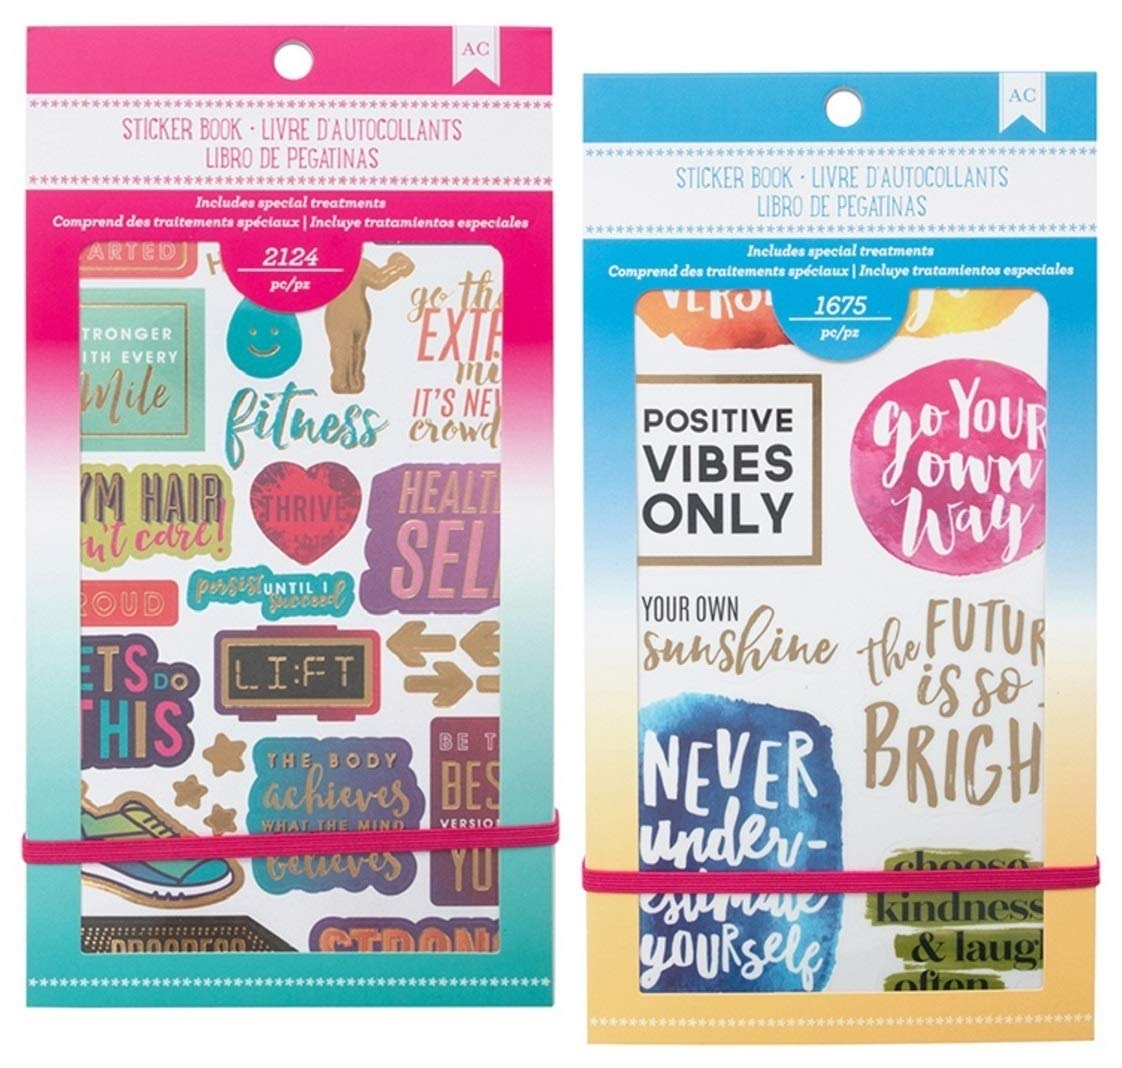 3700 Fitness and Productivity Stickers | Sticker Set with Motivational Quote and Positive Affirmations | for Bullet Journaling, Planner, Scrapbooking, Fitness and Diet Goal Journal | Set of 2 Packs